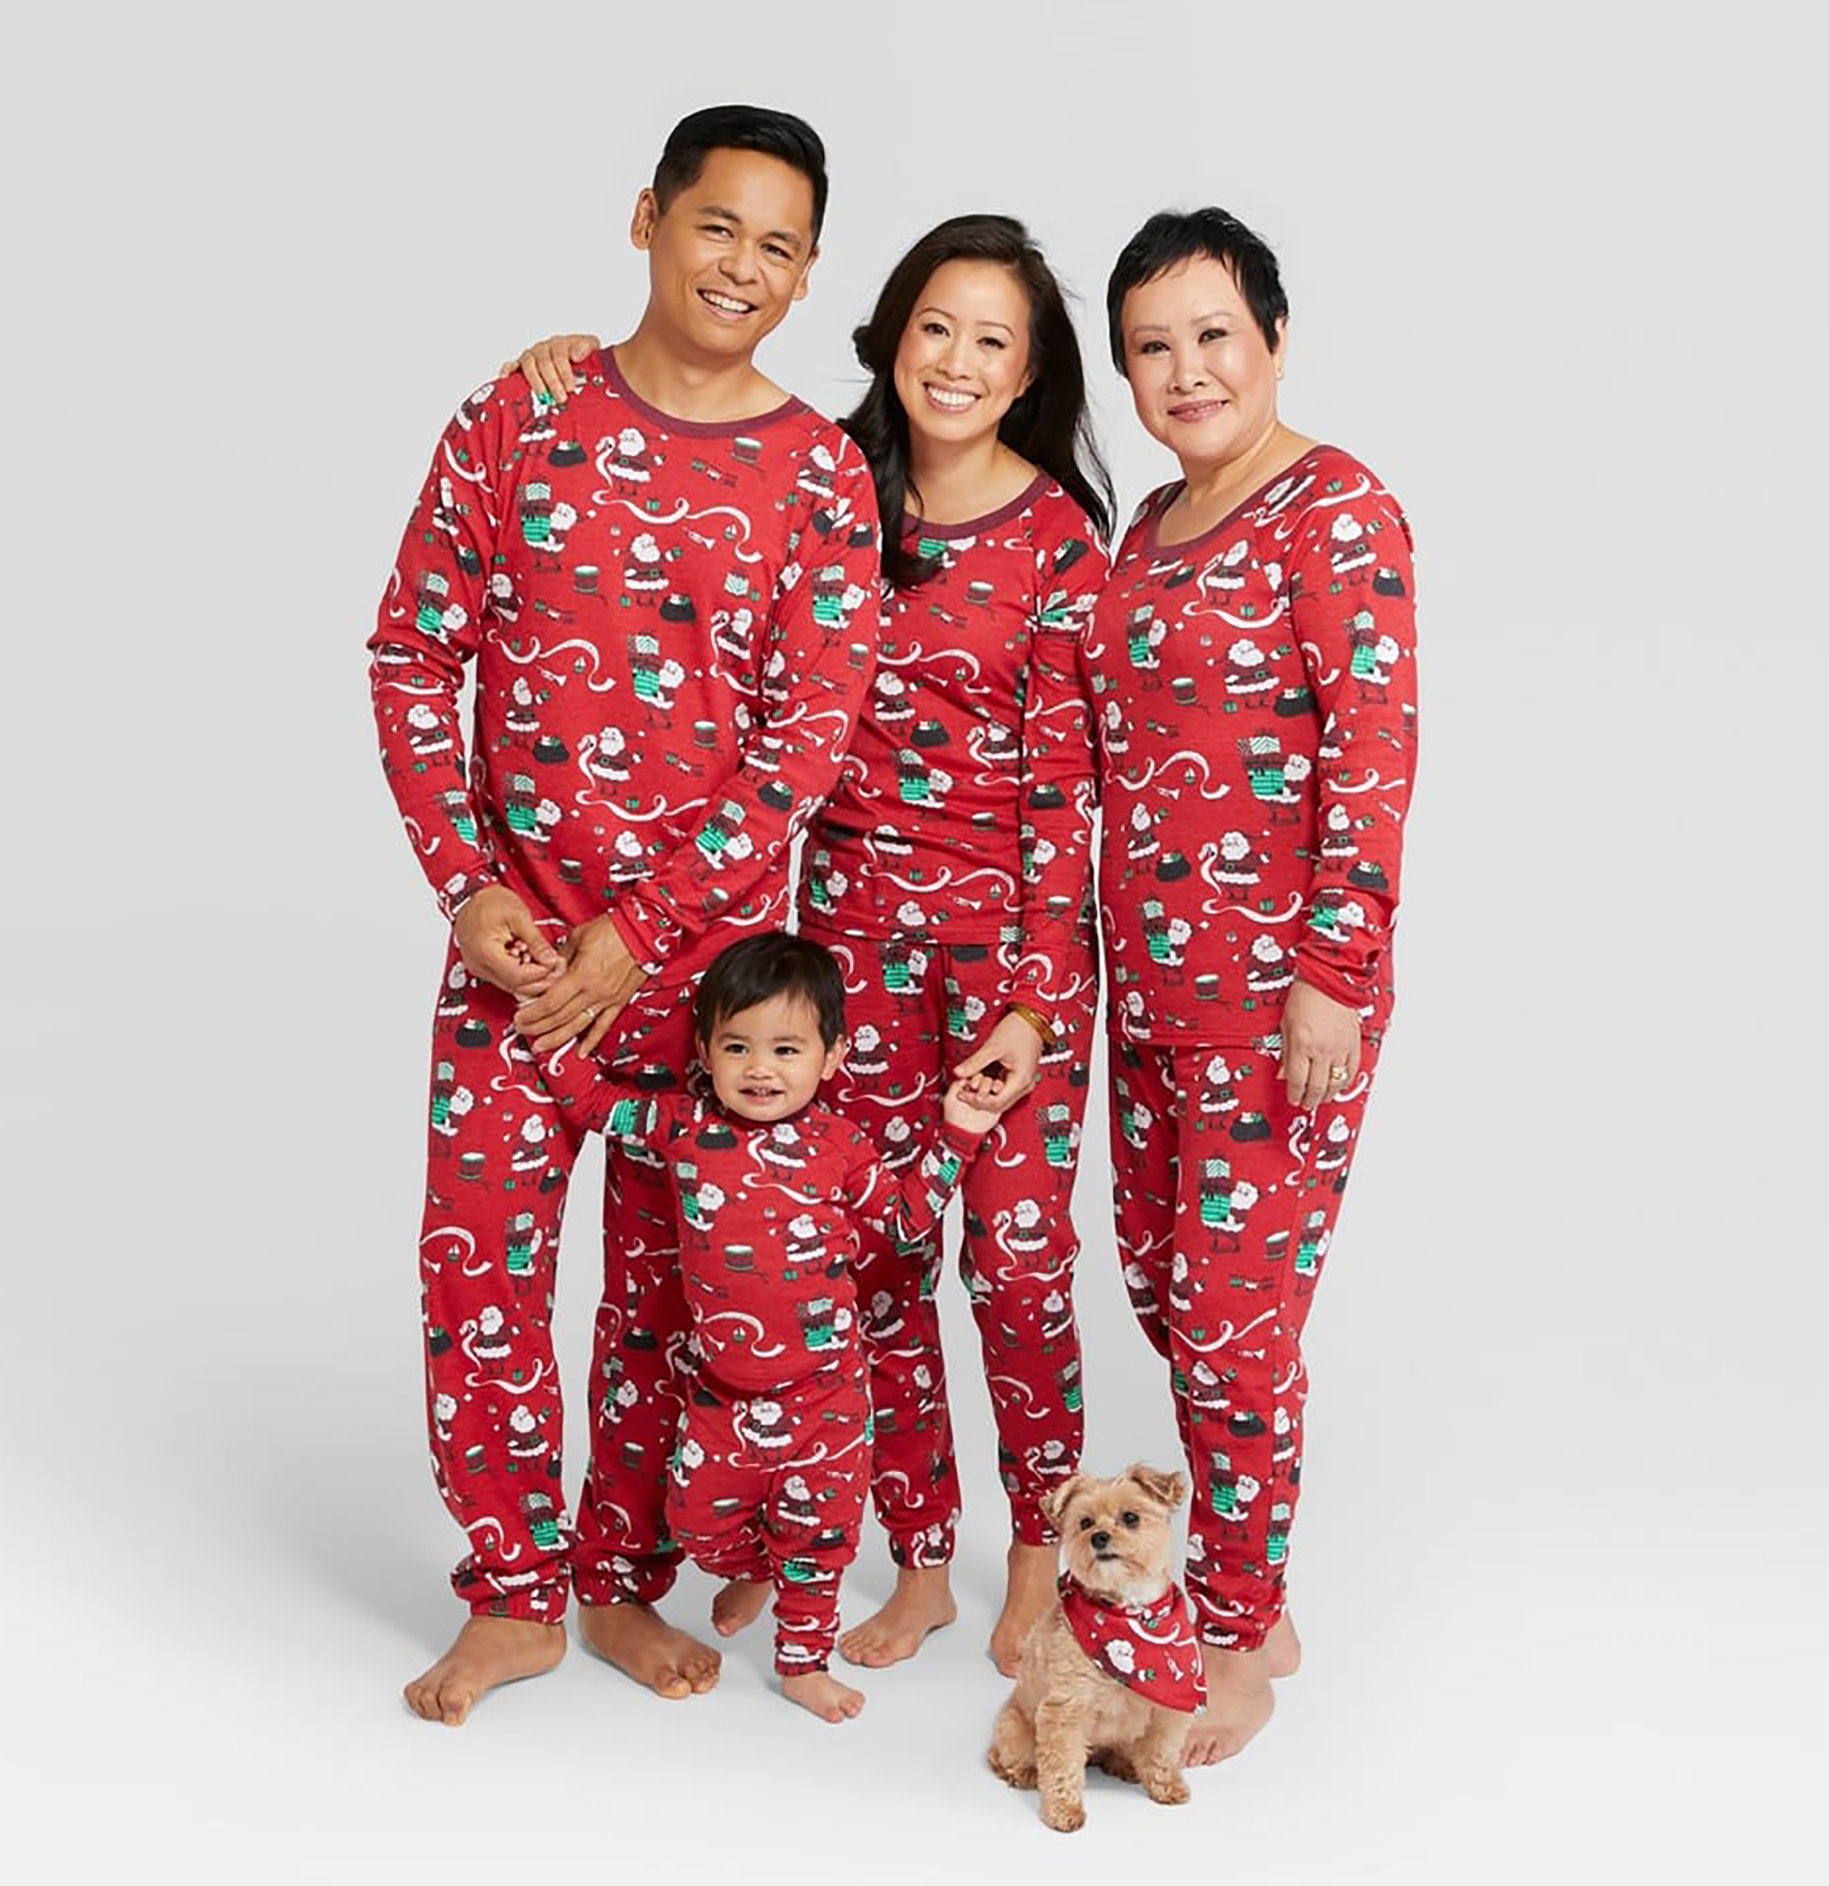 d84bfc1e47 Best Matching Family Christmas Pajamas for 2018 - Family Holiday Pajamas